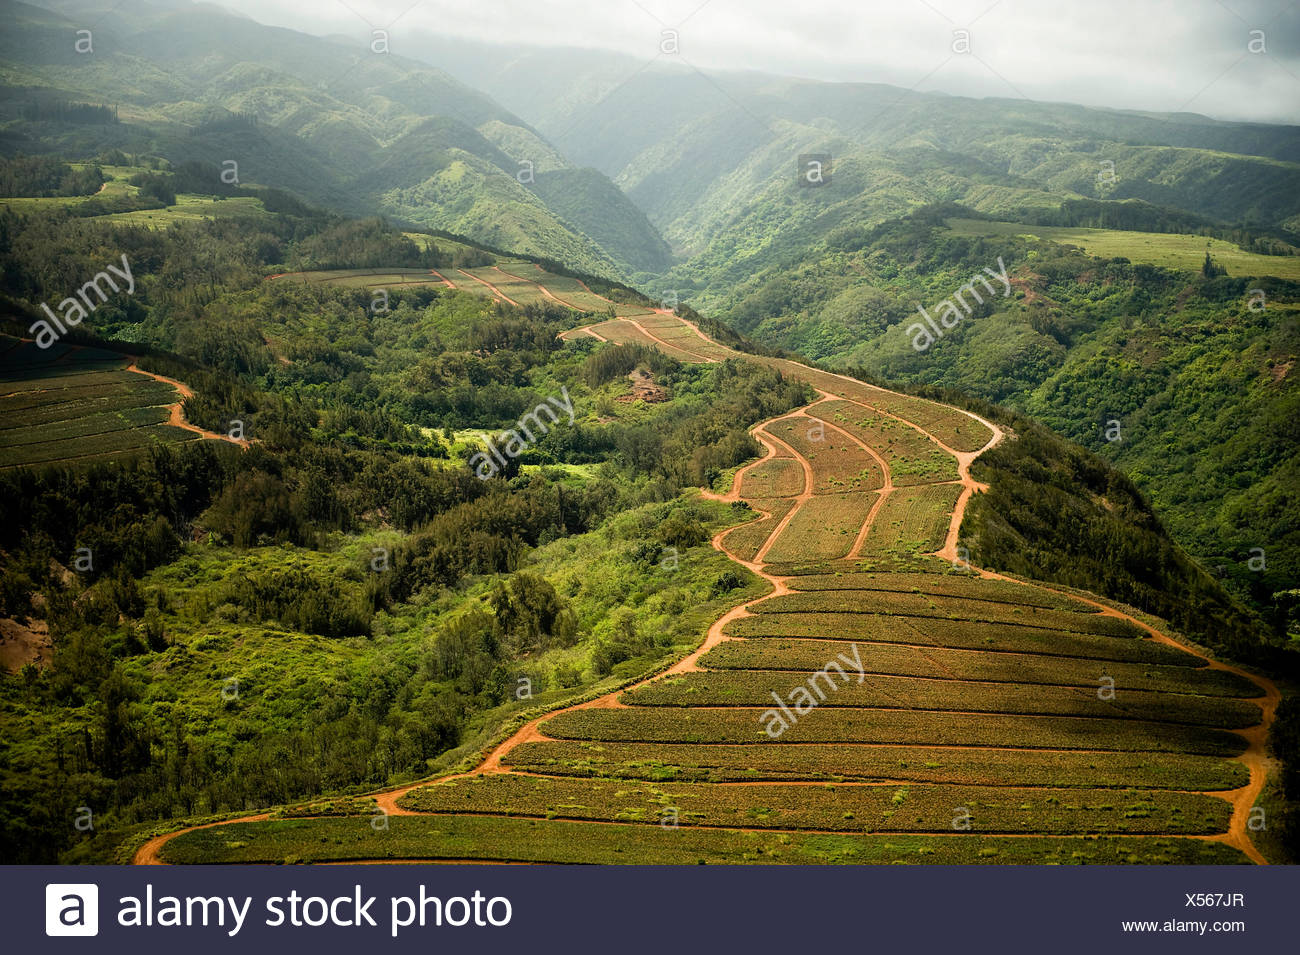 The sun shines on the hilltops of Maui, Hawaii. Farm fields and foliage over grow the mountainside rocks. - Stock Image